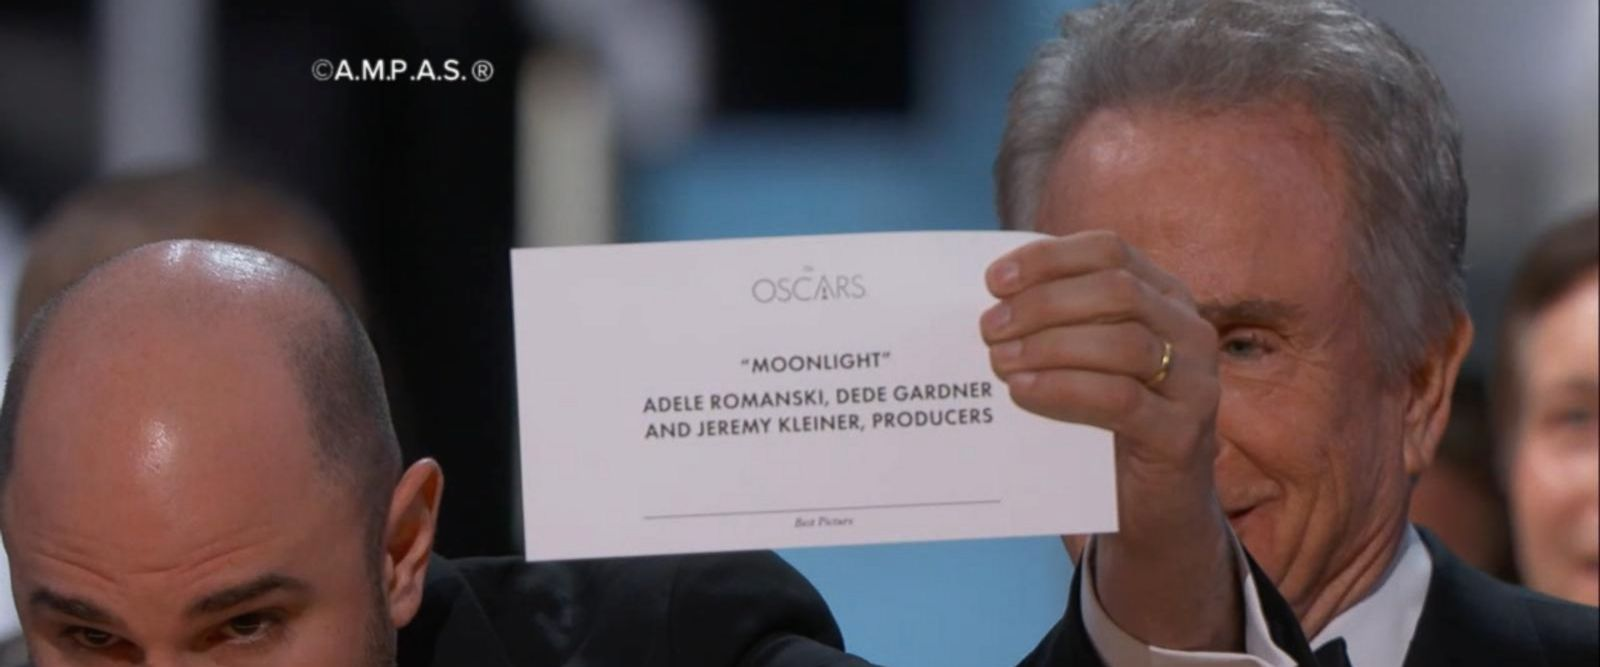 VIDEO: Wrong movie announced for best picture at the Oscars